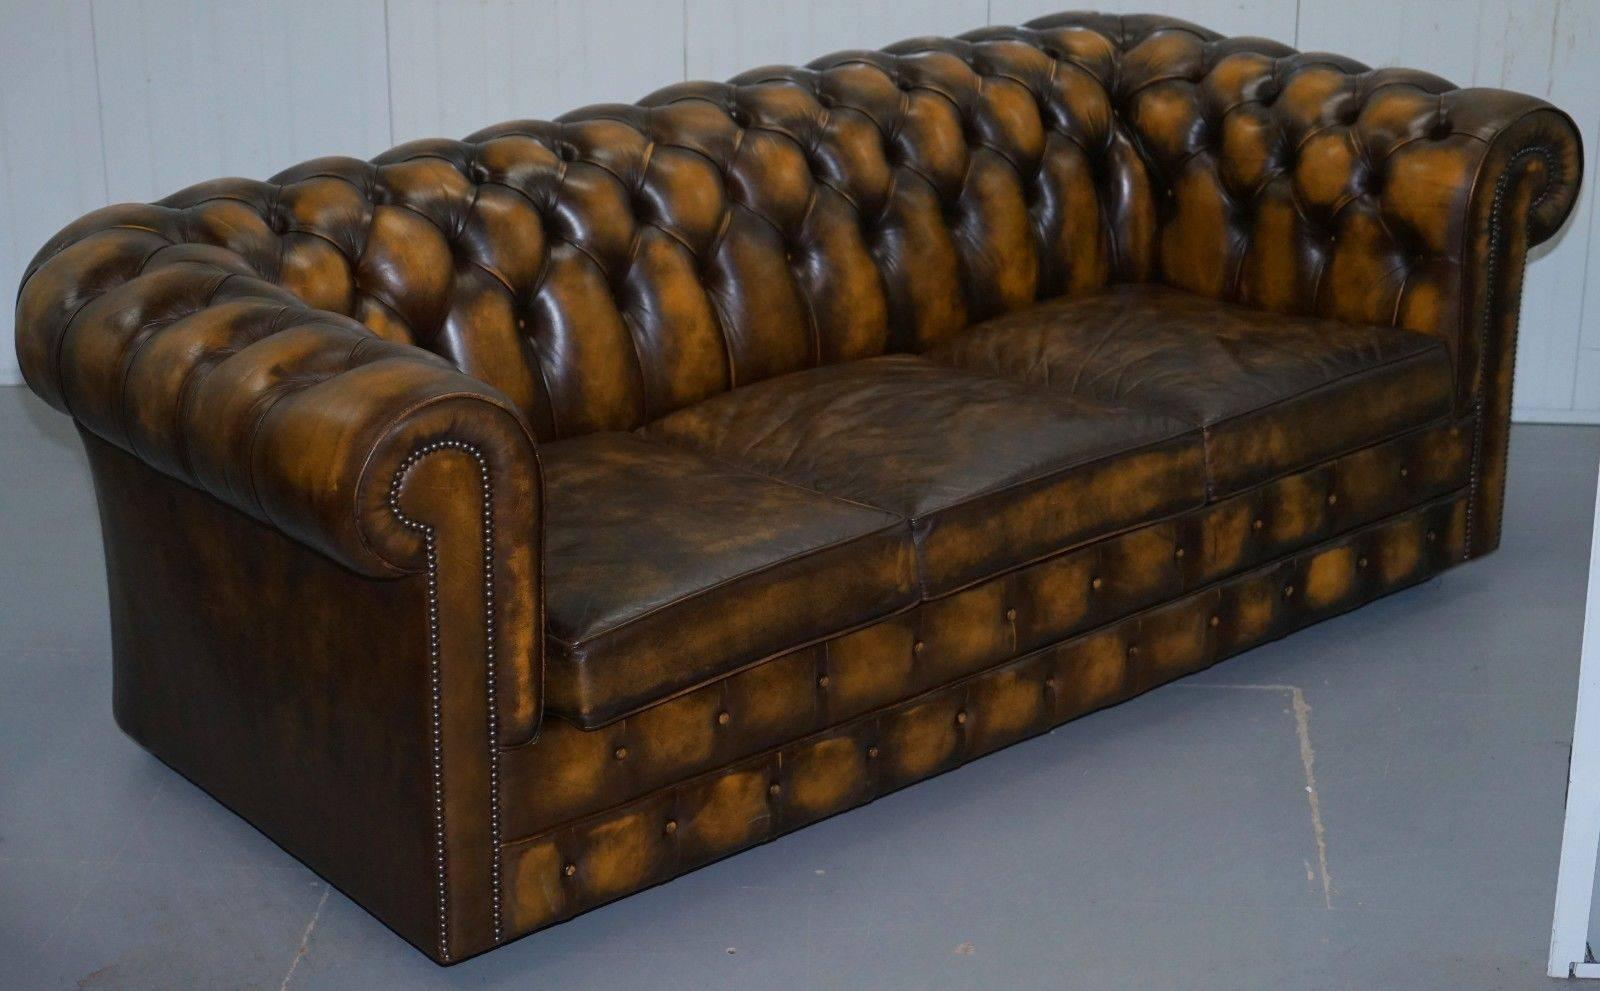 We are delighted to offer for sale this substantial Mill Brook Furnishings  hand dyed aged brown